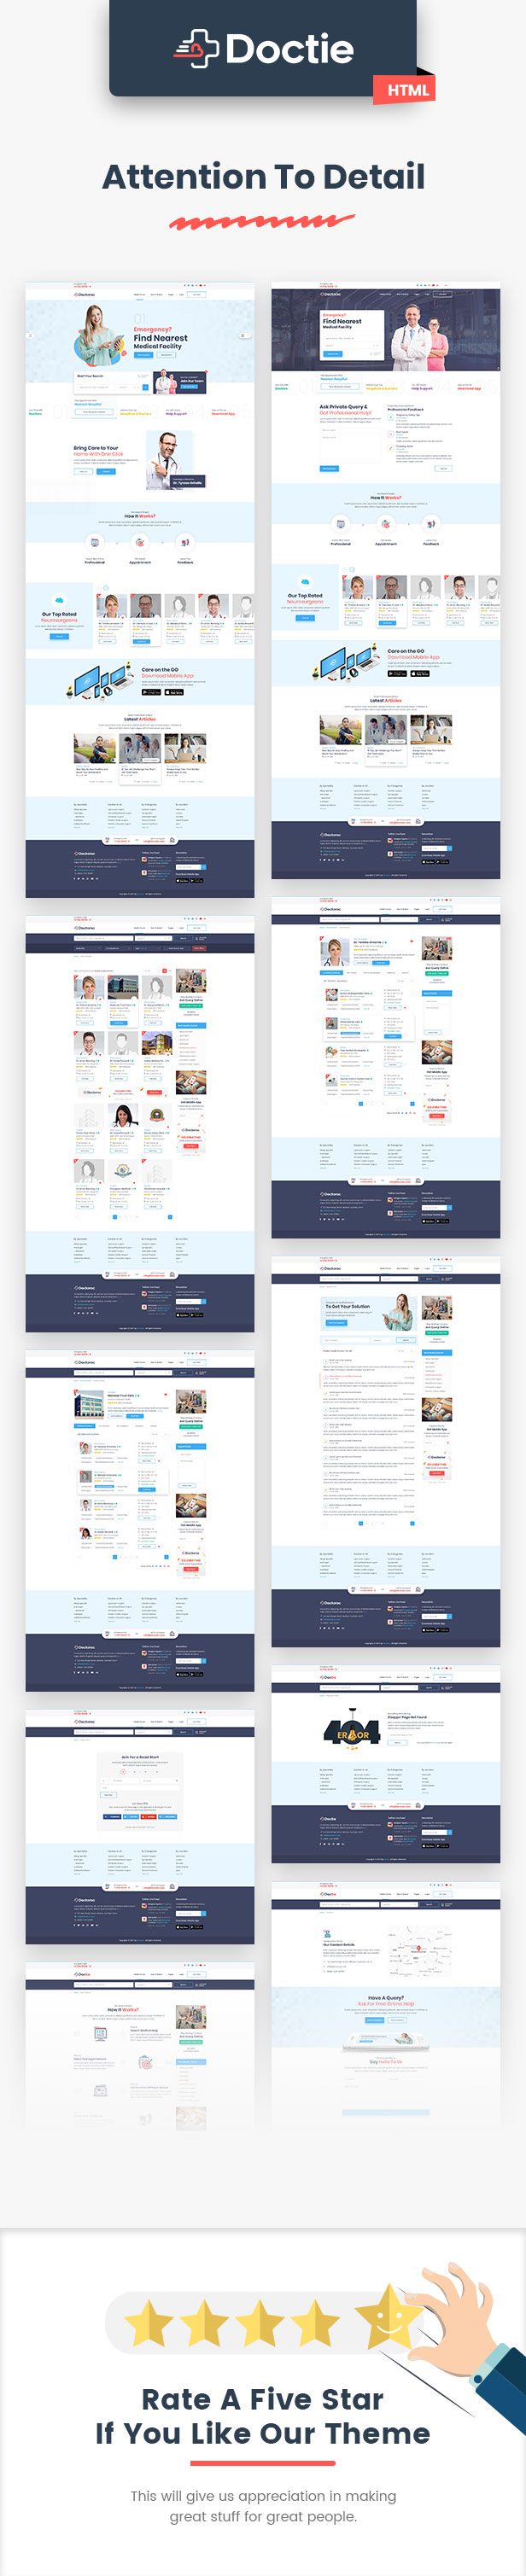 Doclist - Medical and Doctor Directory HTML Template - 5